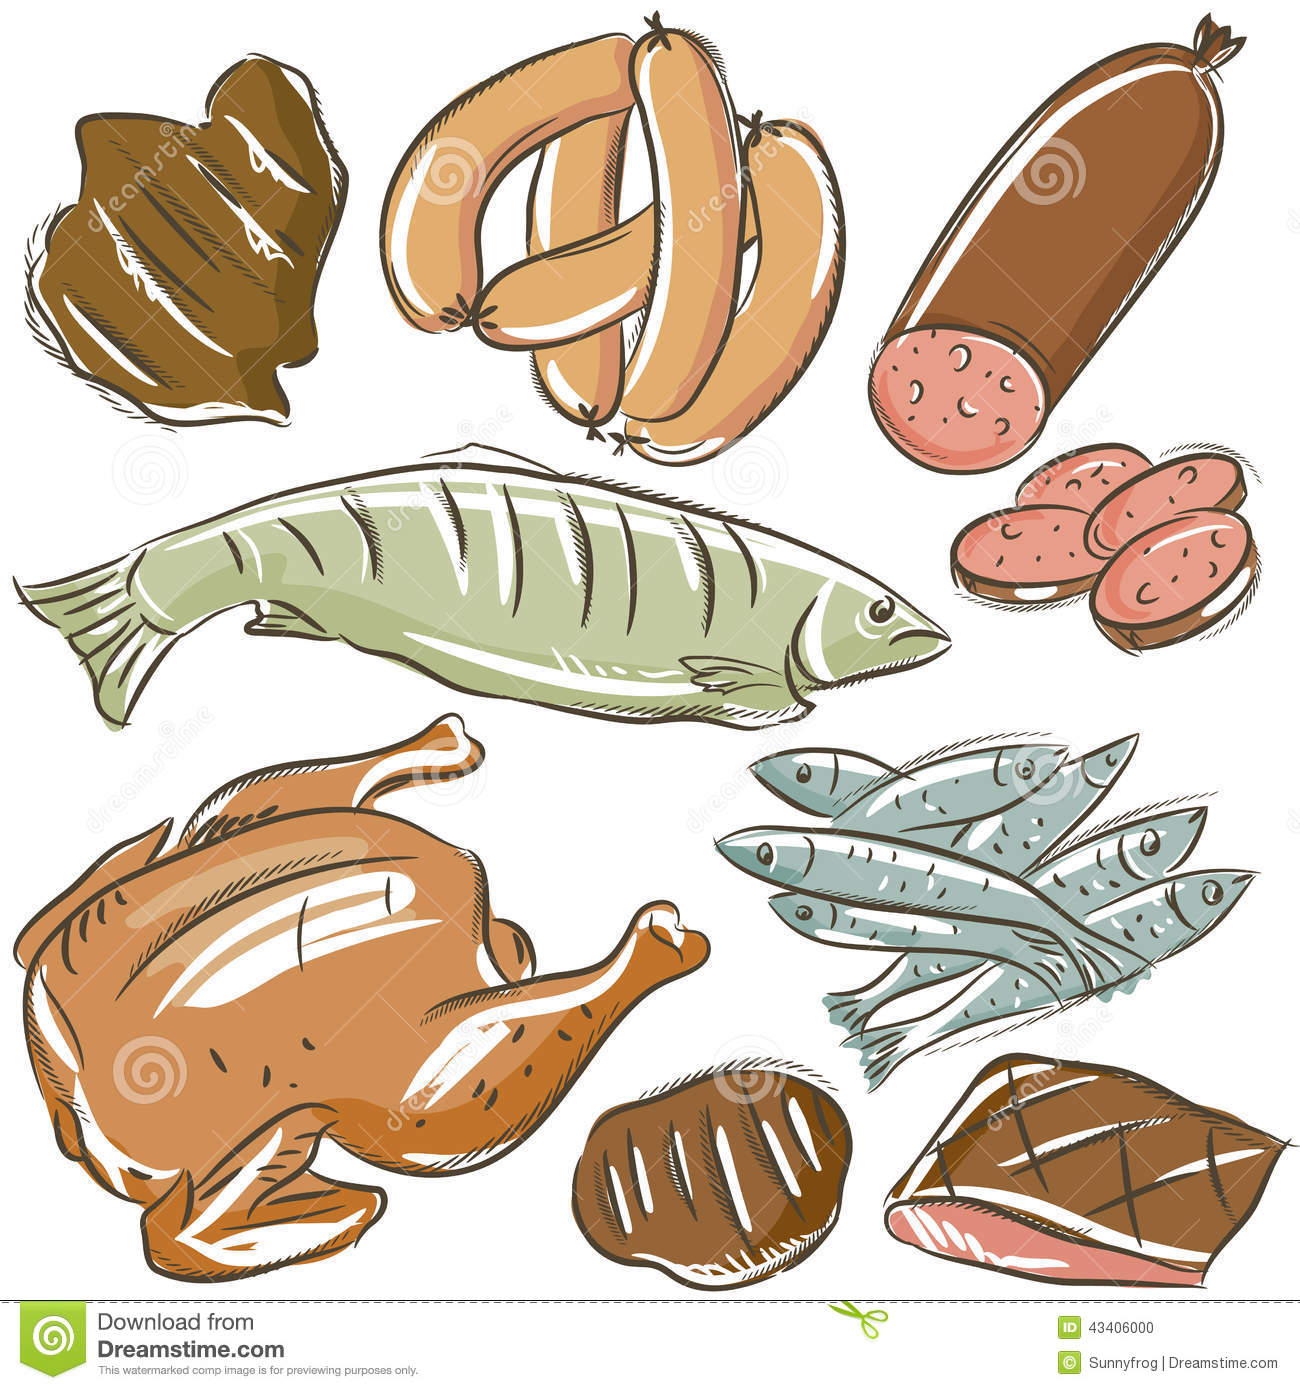 Meats clipart - Clipground